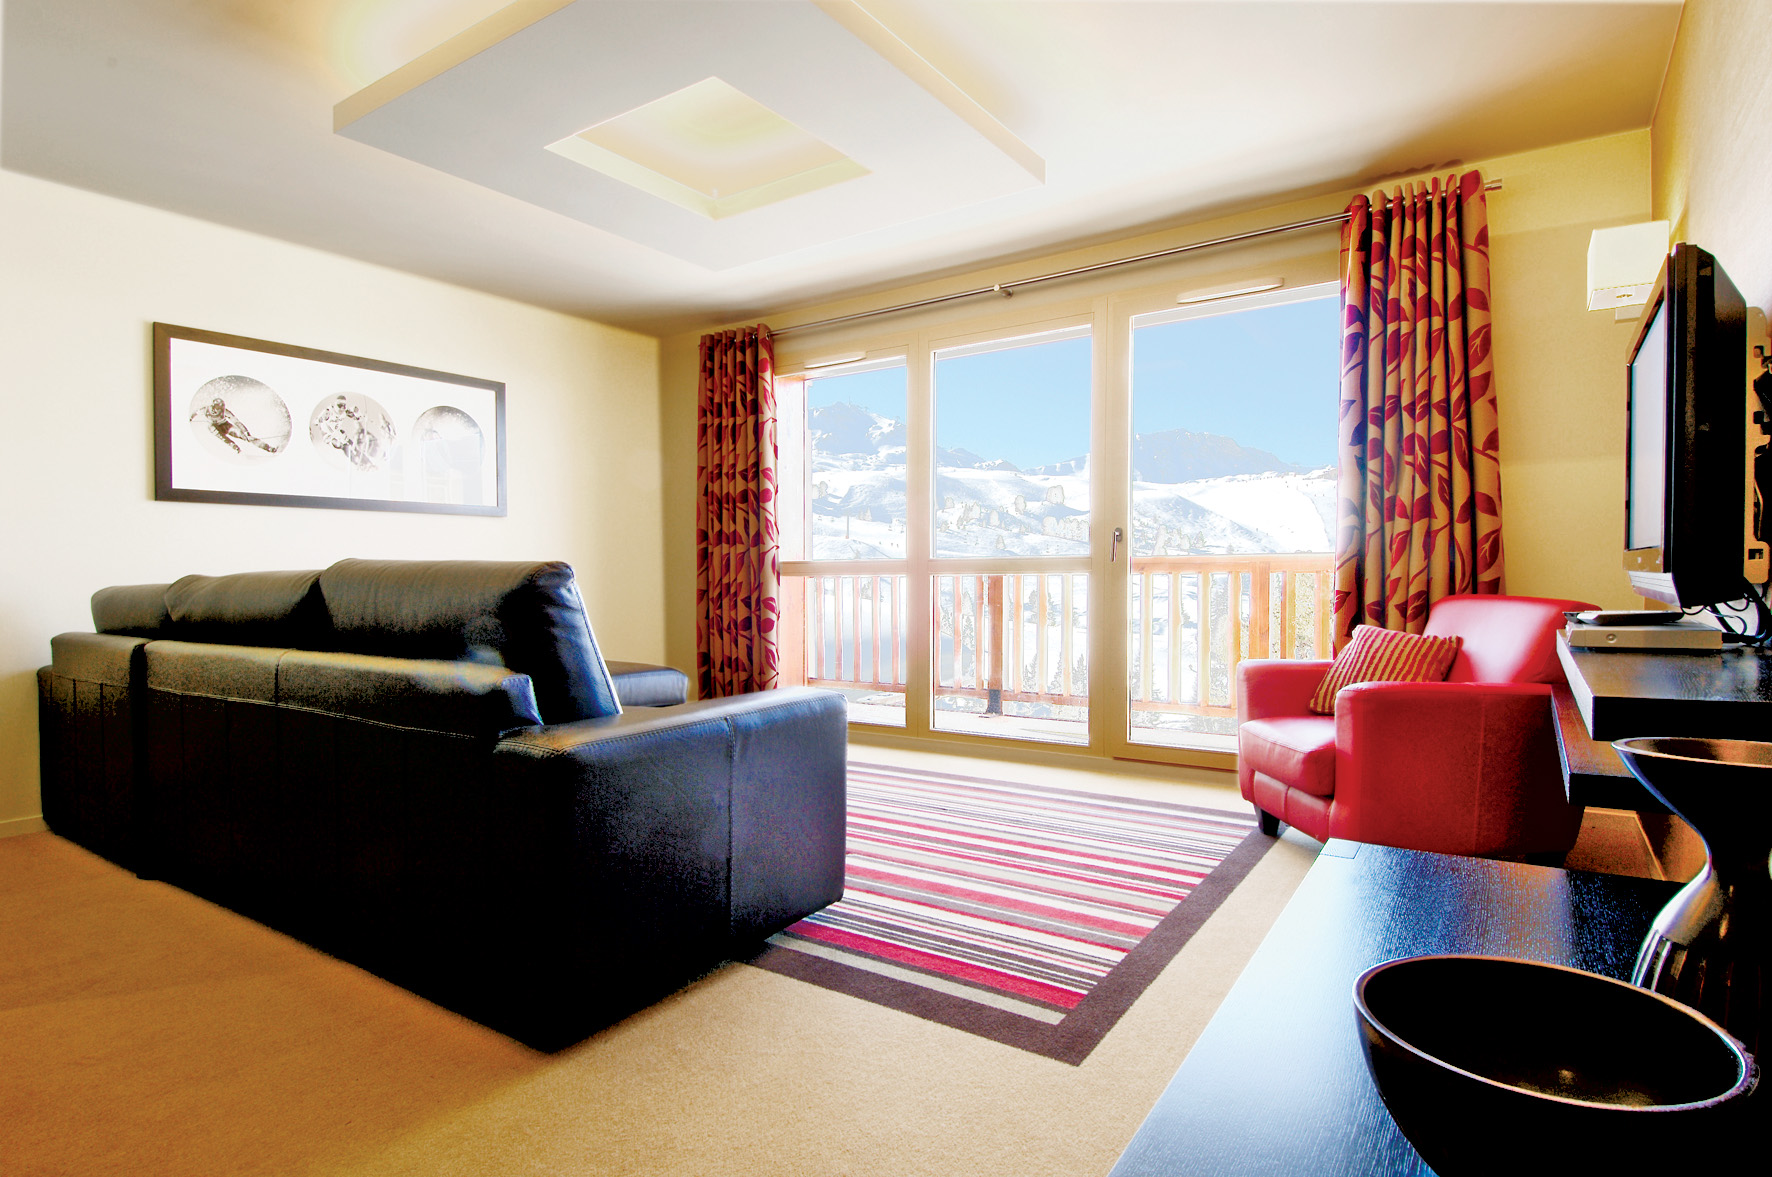 view of the lounge with red and beige curtains, leather sofa, red chair, striped rug facing towards floor to ceiling sliding door overlooking the ski slopes/mountains